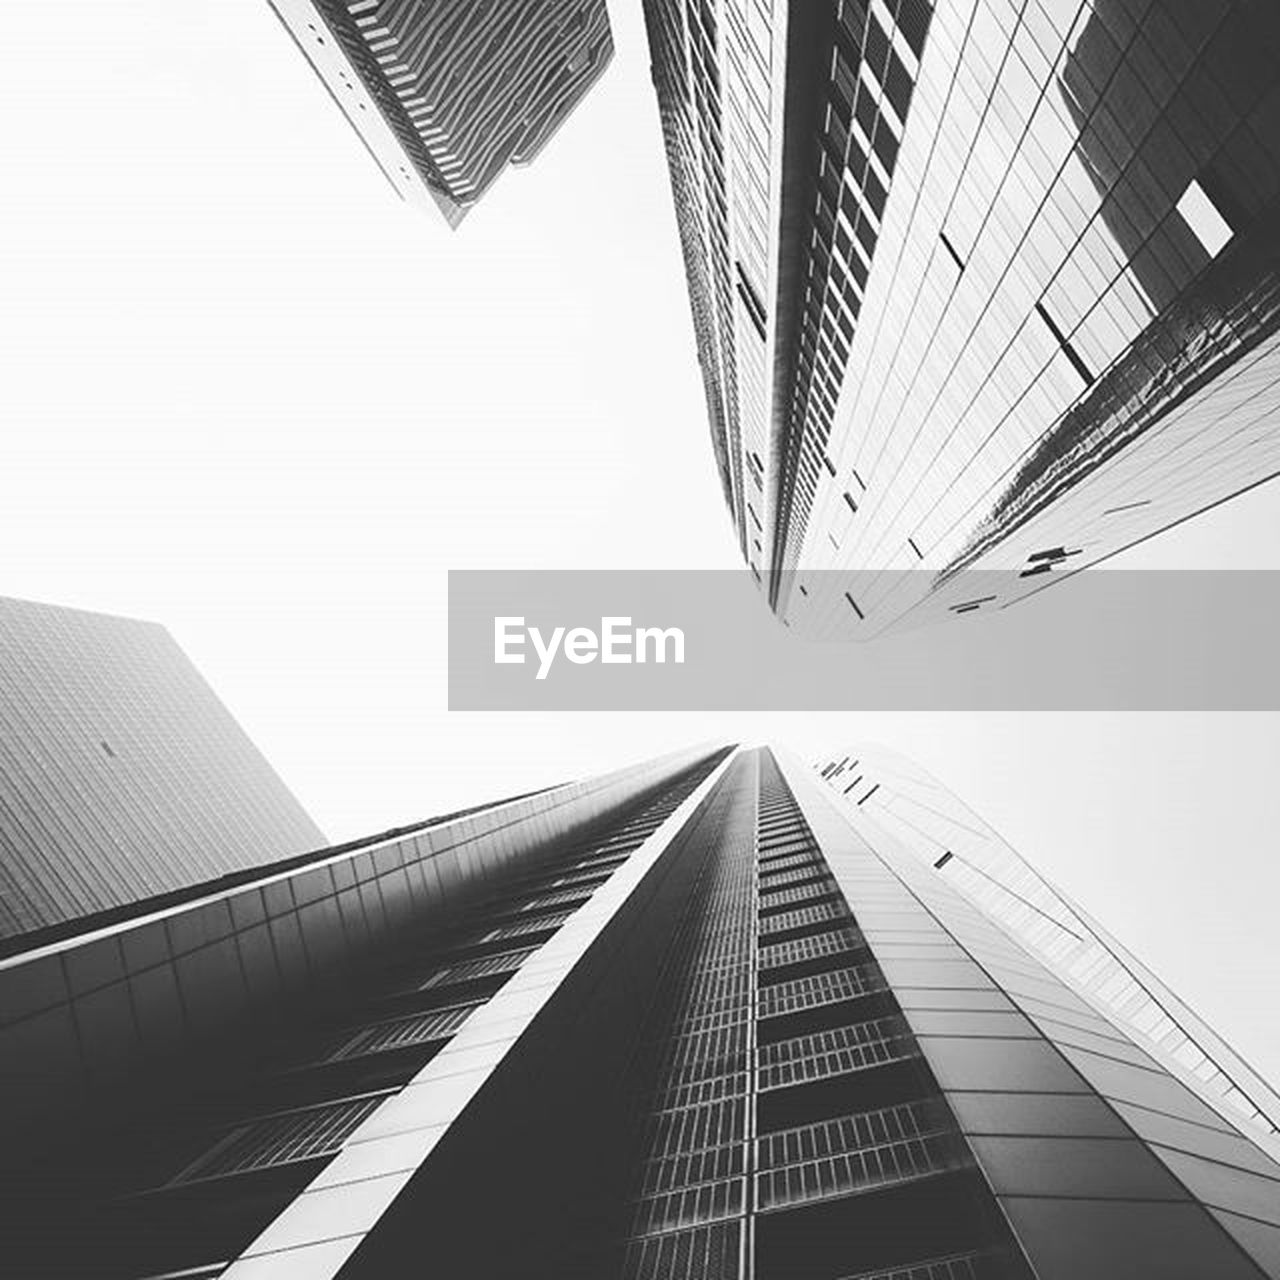 architecture, skyscraper, built structure, city, modern, building exterior, low angle view, day, futuristic, business, no people, downtown district, outdoors, office, corporate business, urban skyline, sky